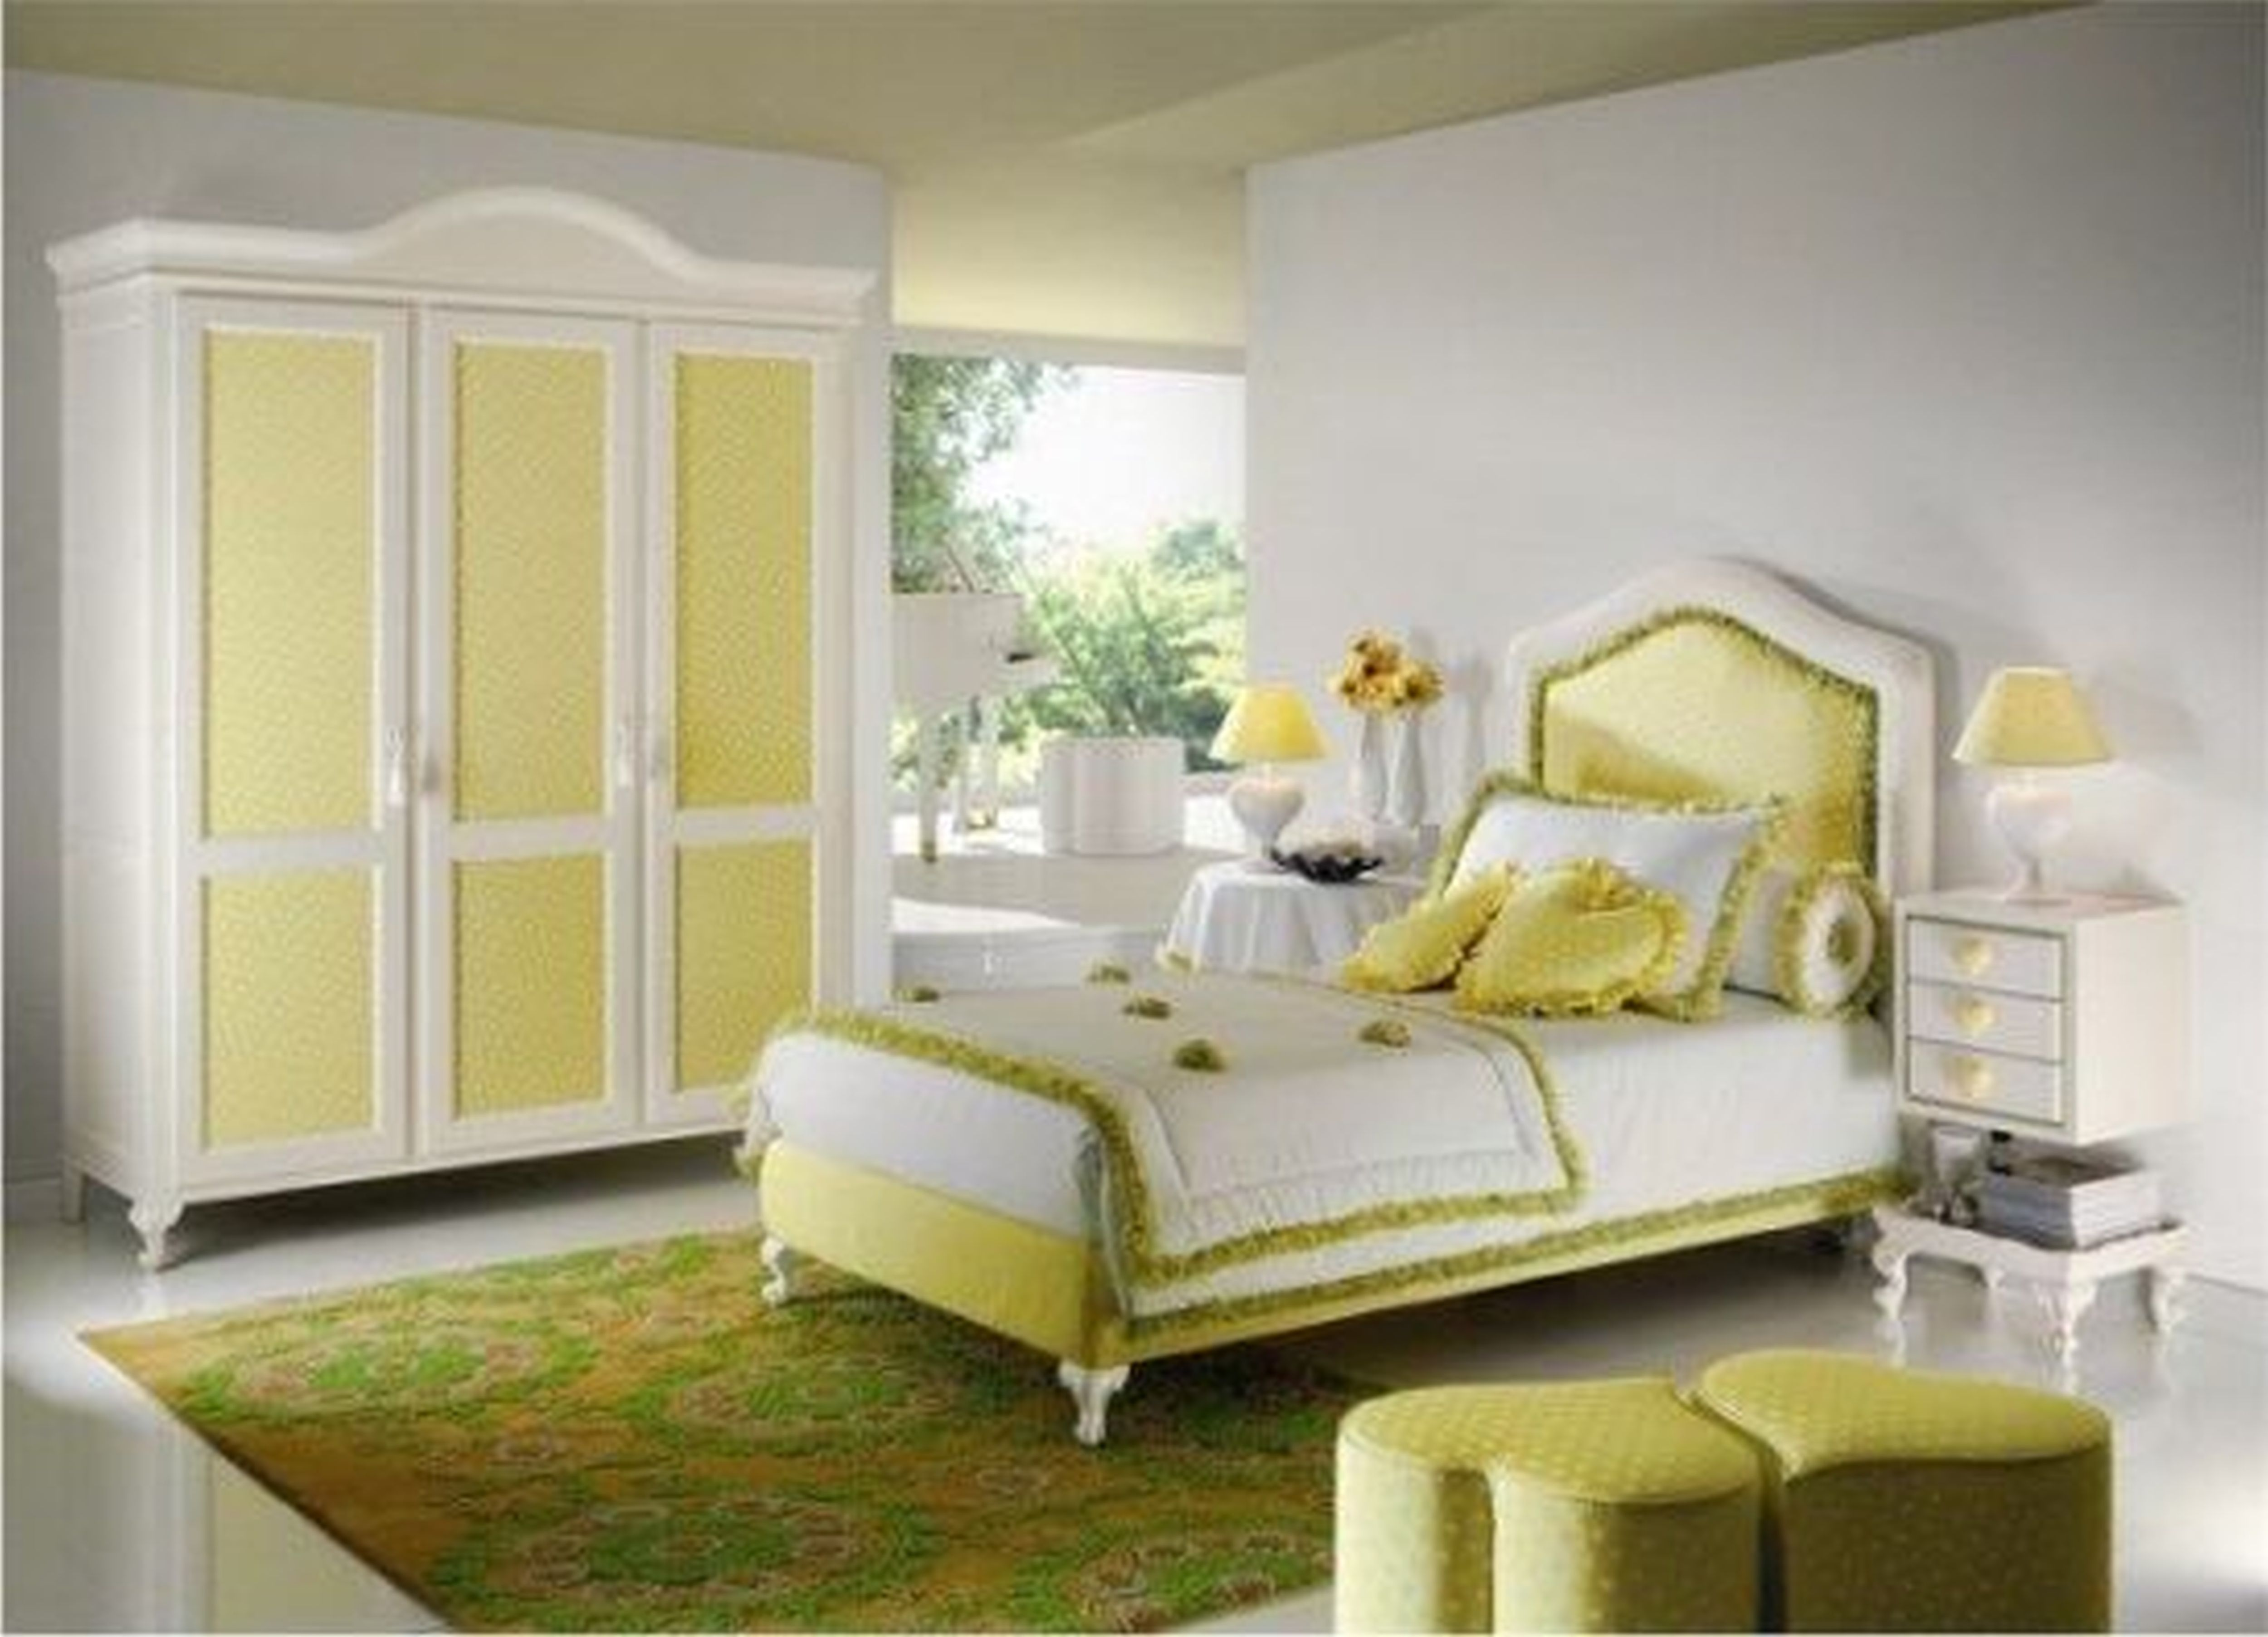 bedroom door ideas tumblr bedroom door ideas